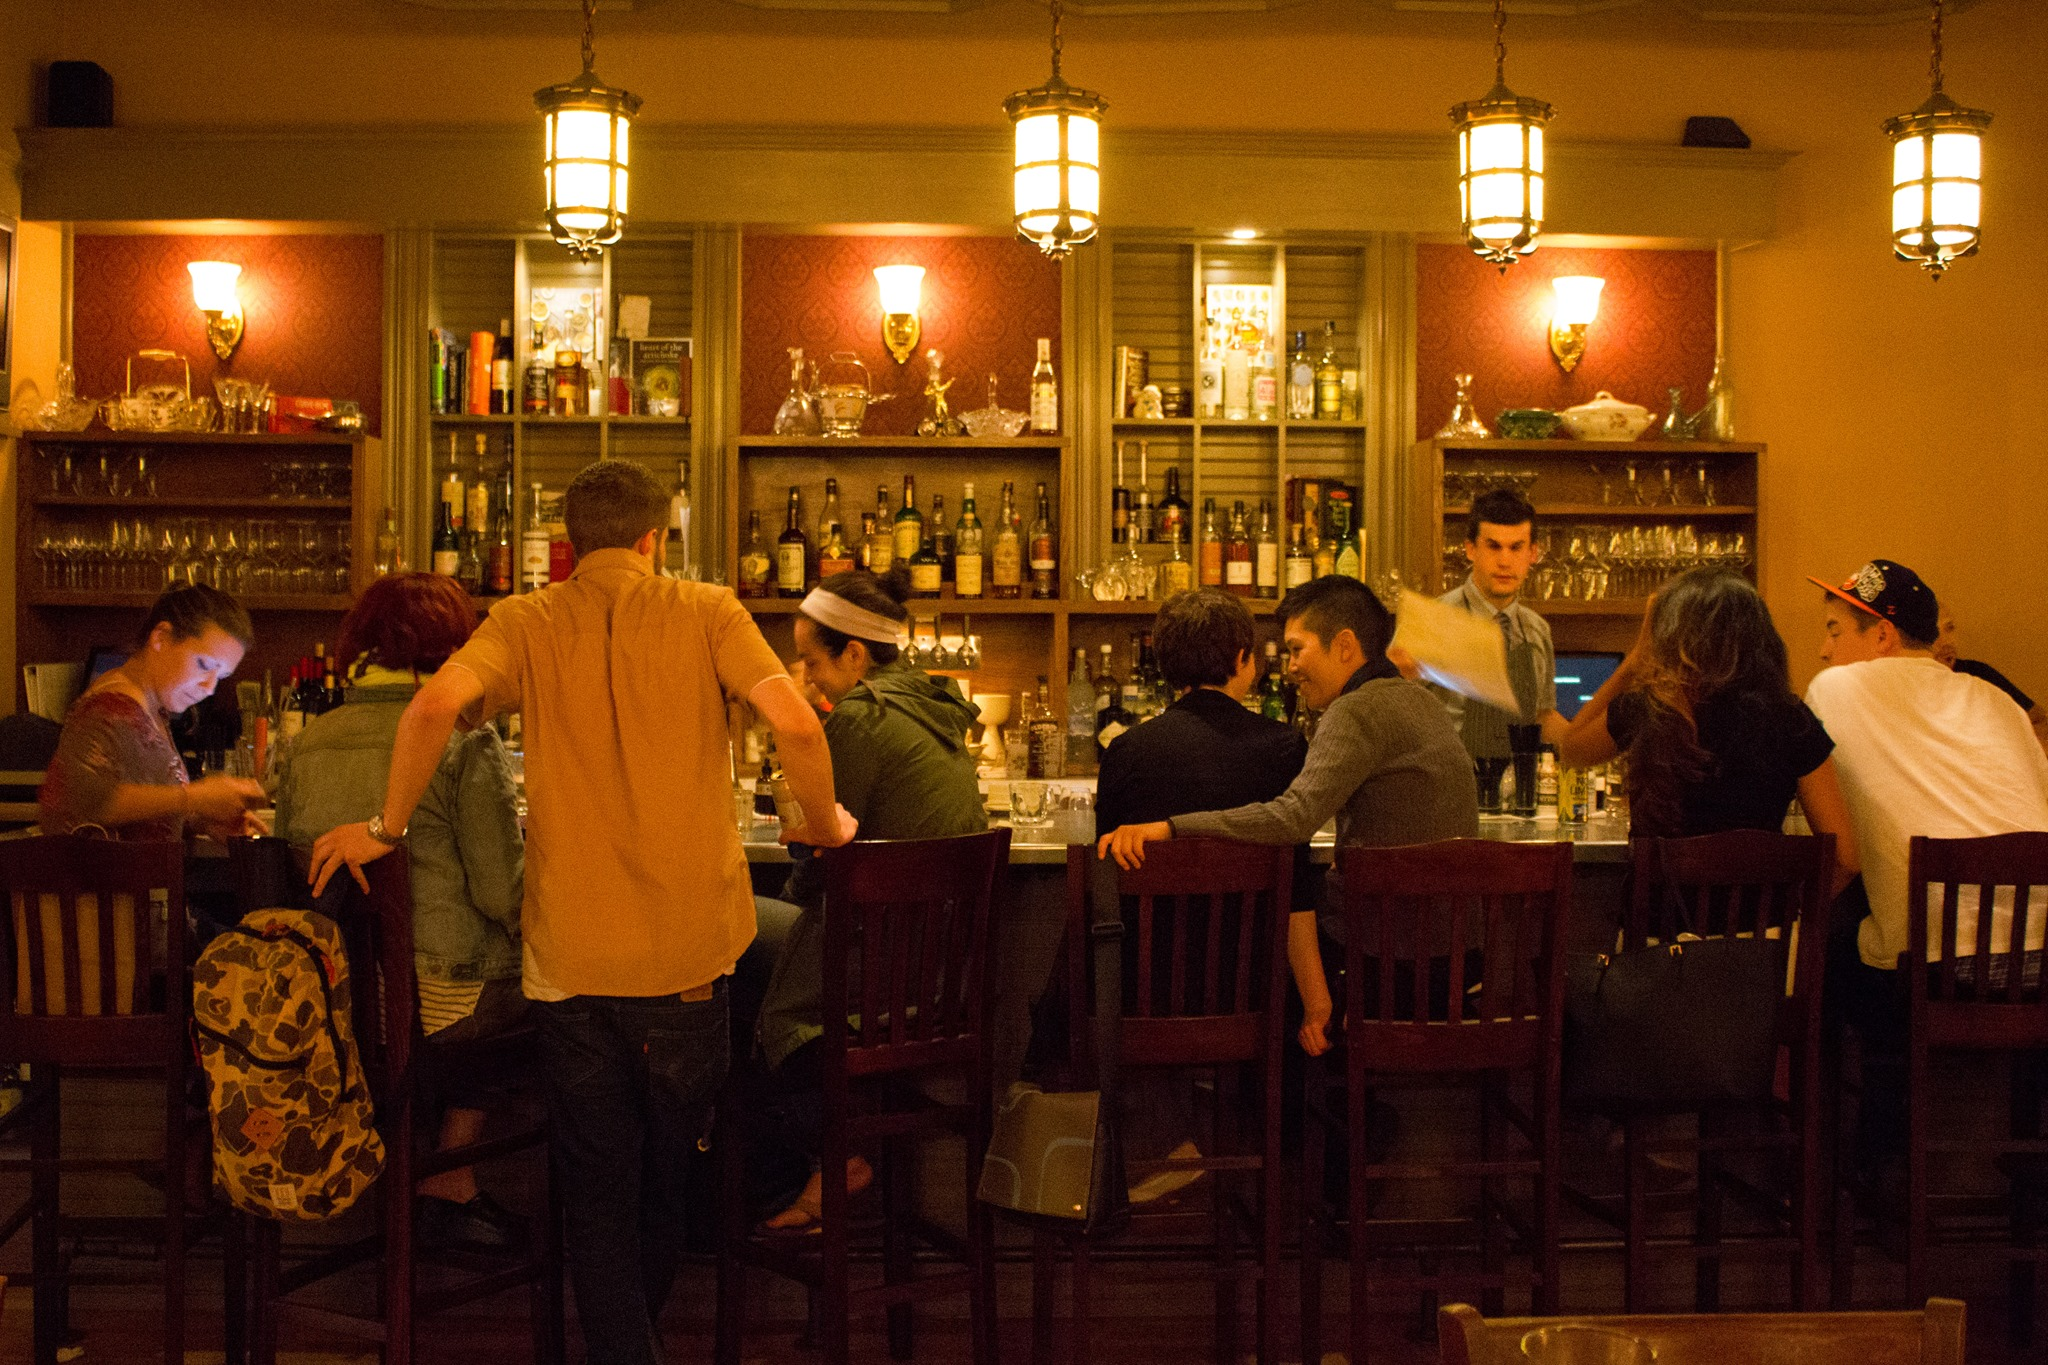 Fairsted Kitchen Bids A u on New Year s Eve Eater Boston